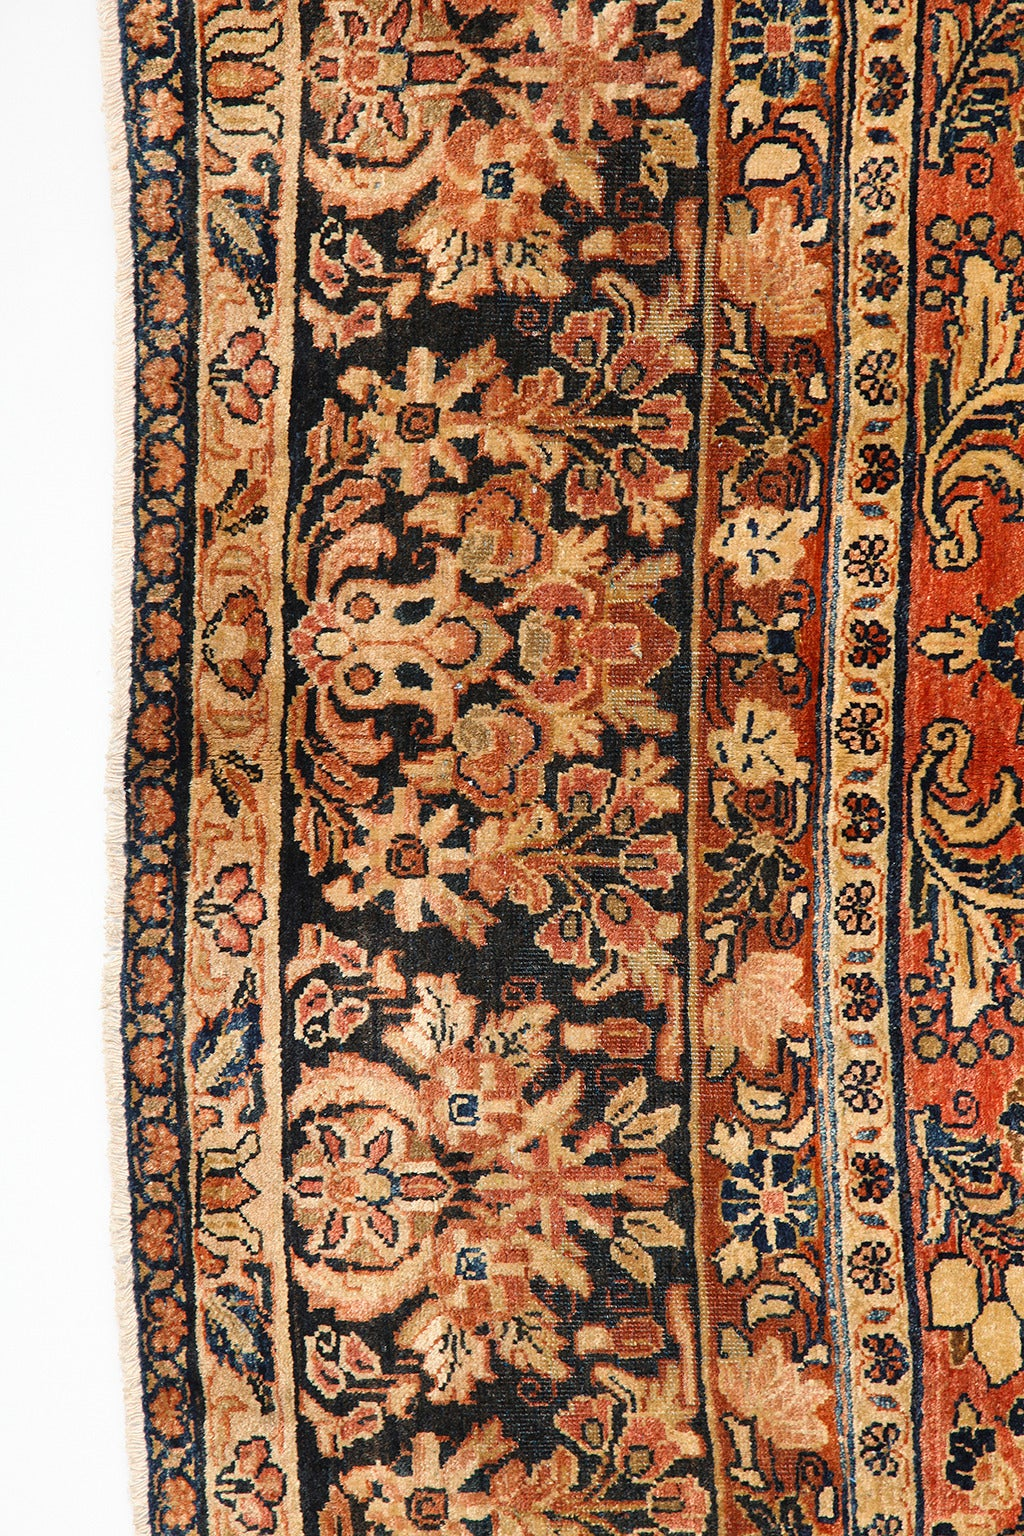 Persian Sarouk Carpet with Pure Wool Pile and Natural Vegetable Dyes, circa 1910 1